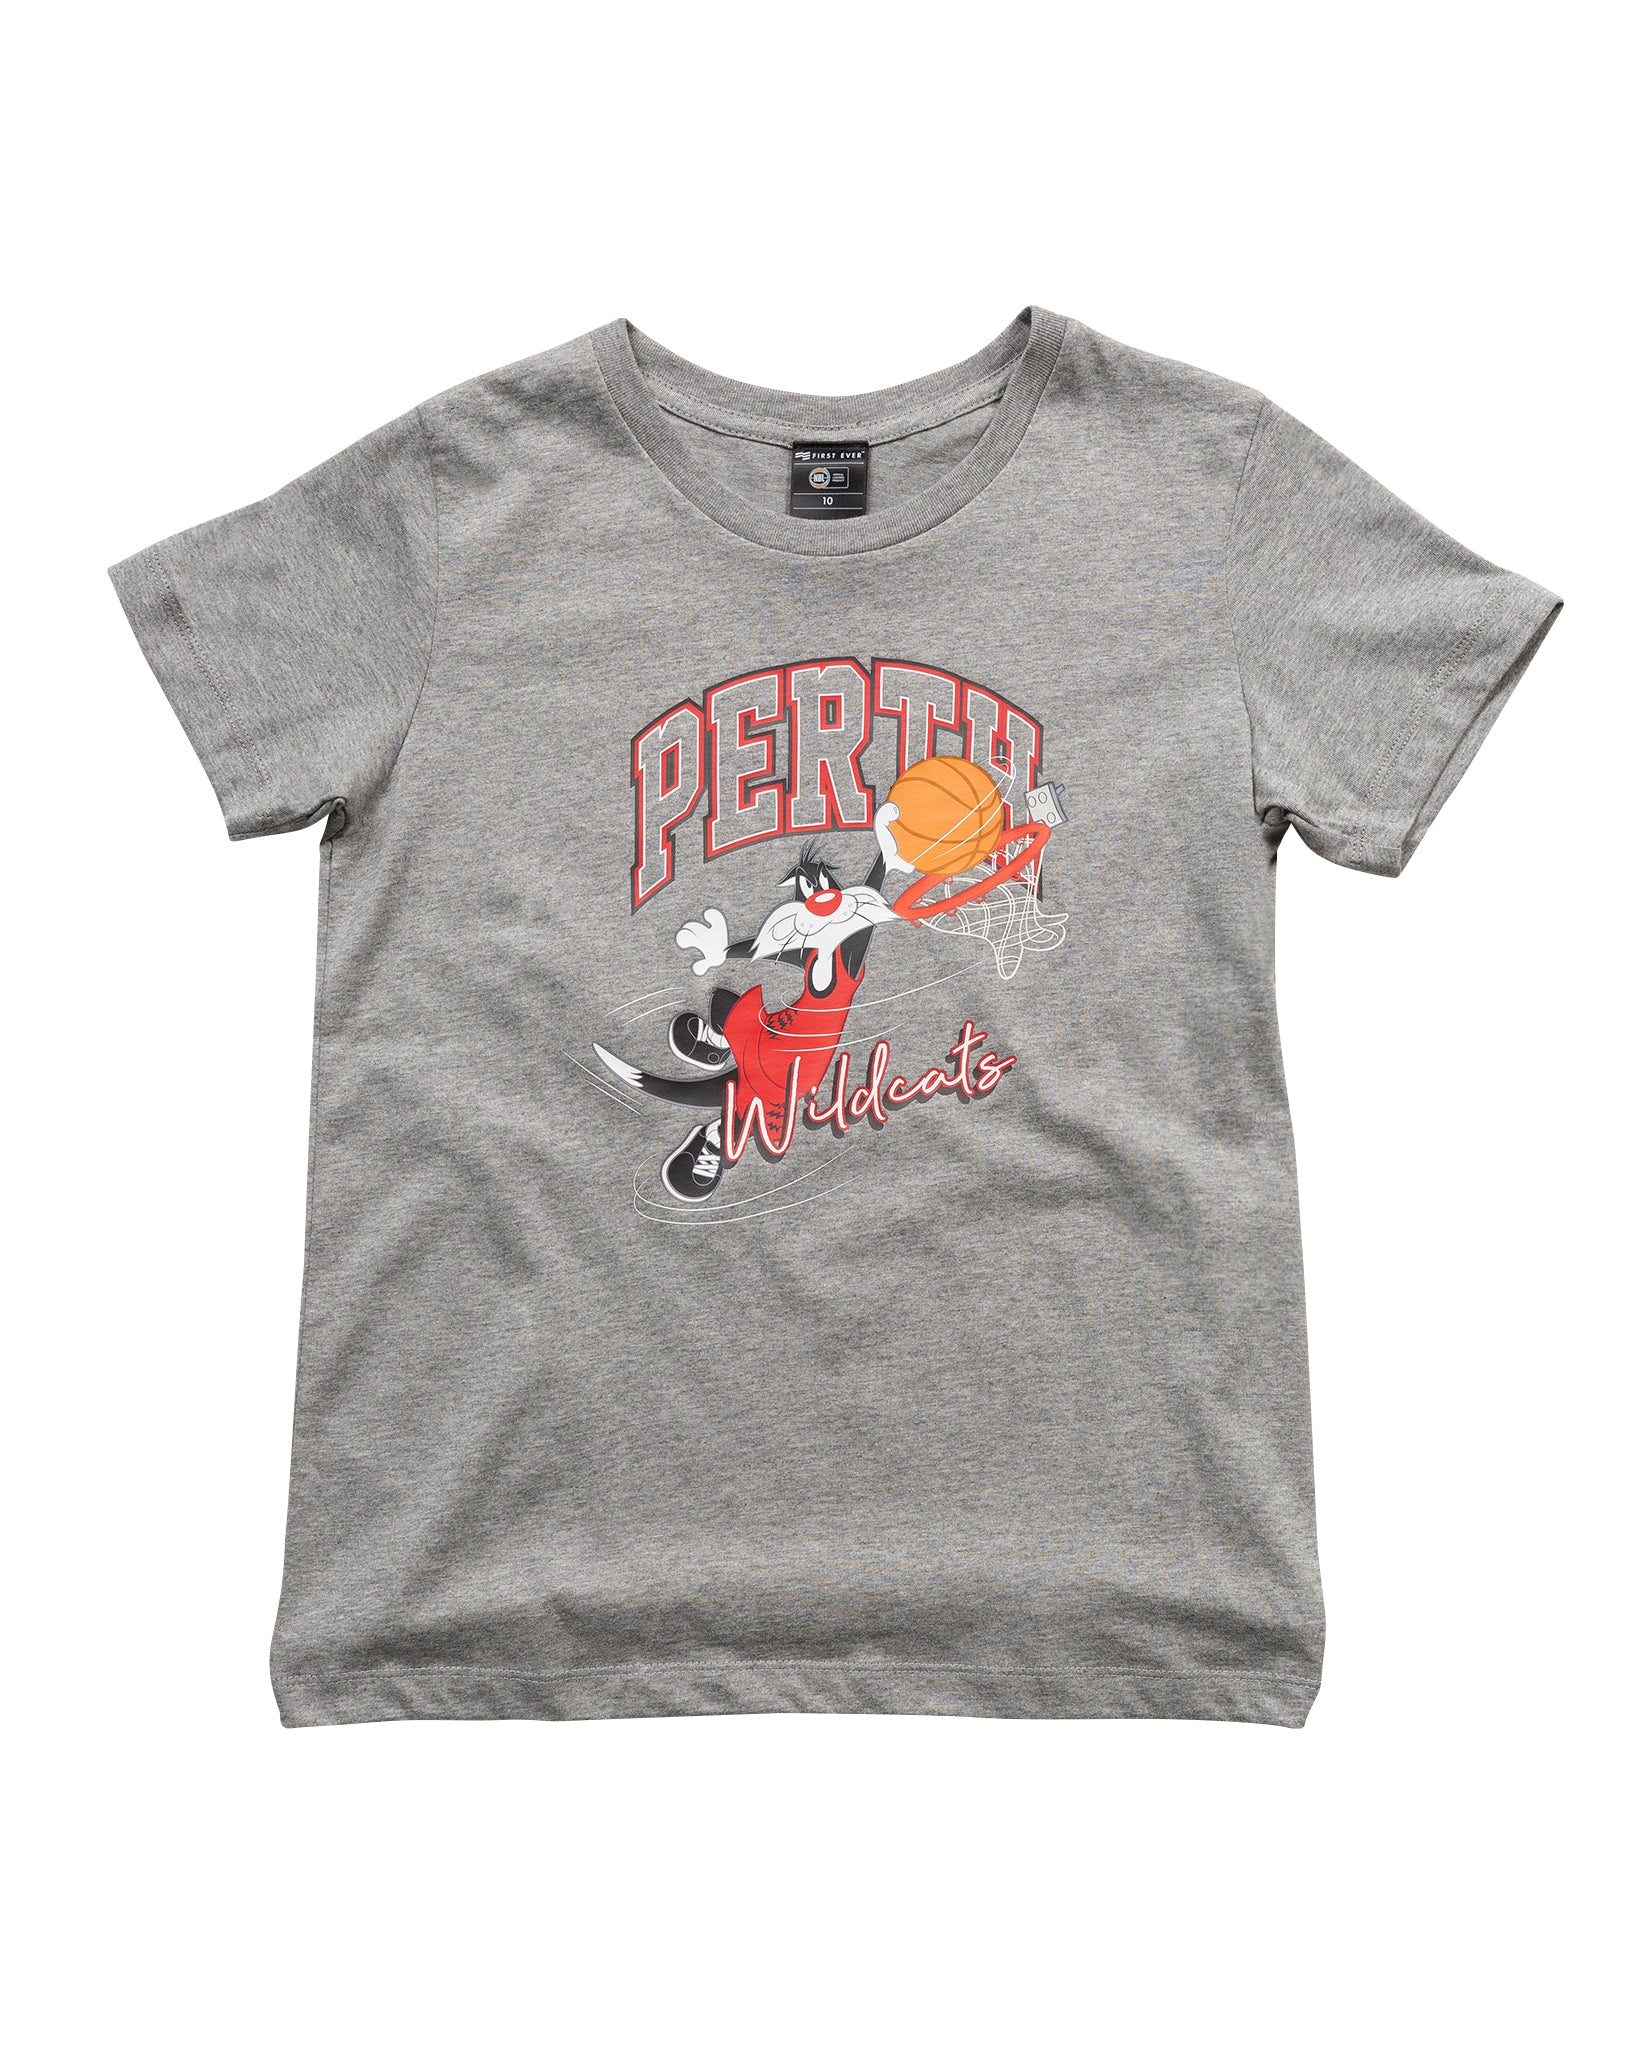 Perth Wildcats 19/20 Sylvester The Cat Youth Tee